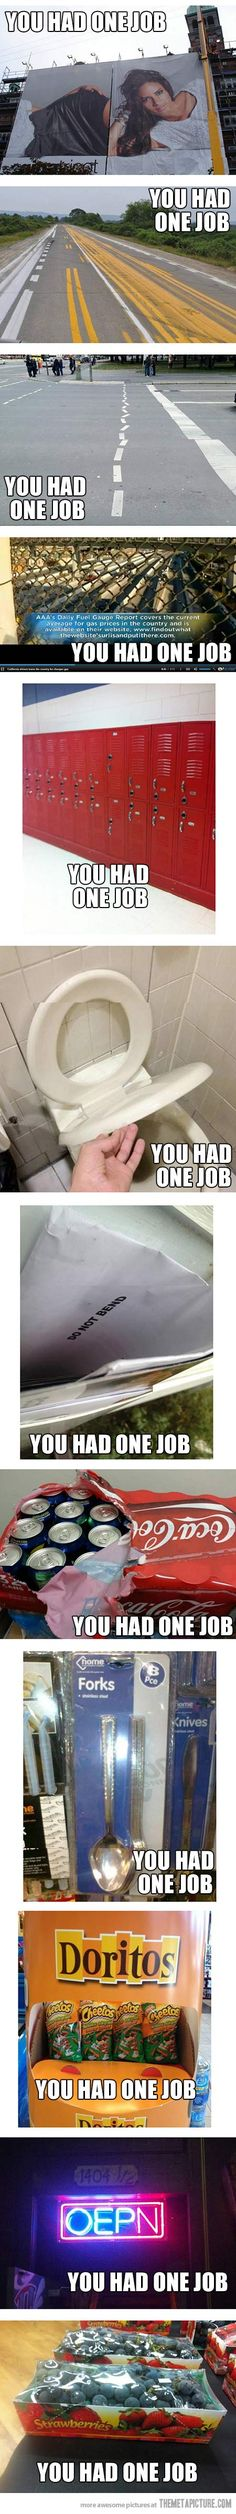 You had just one job!